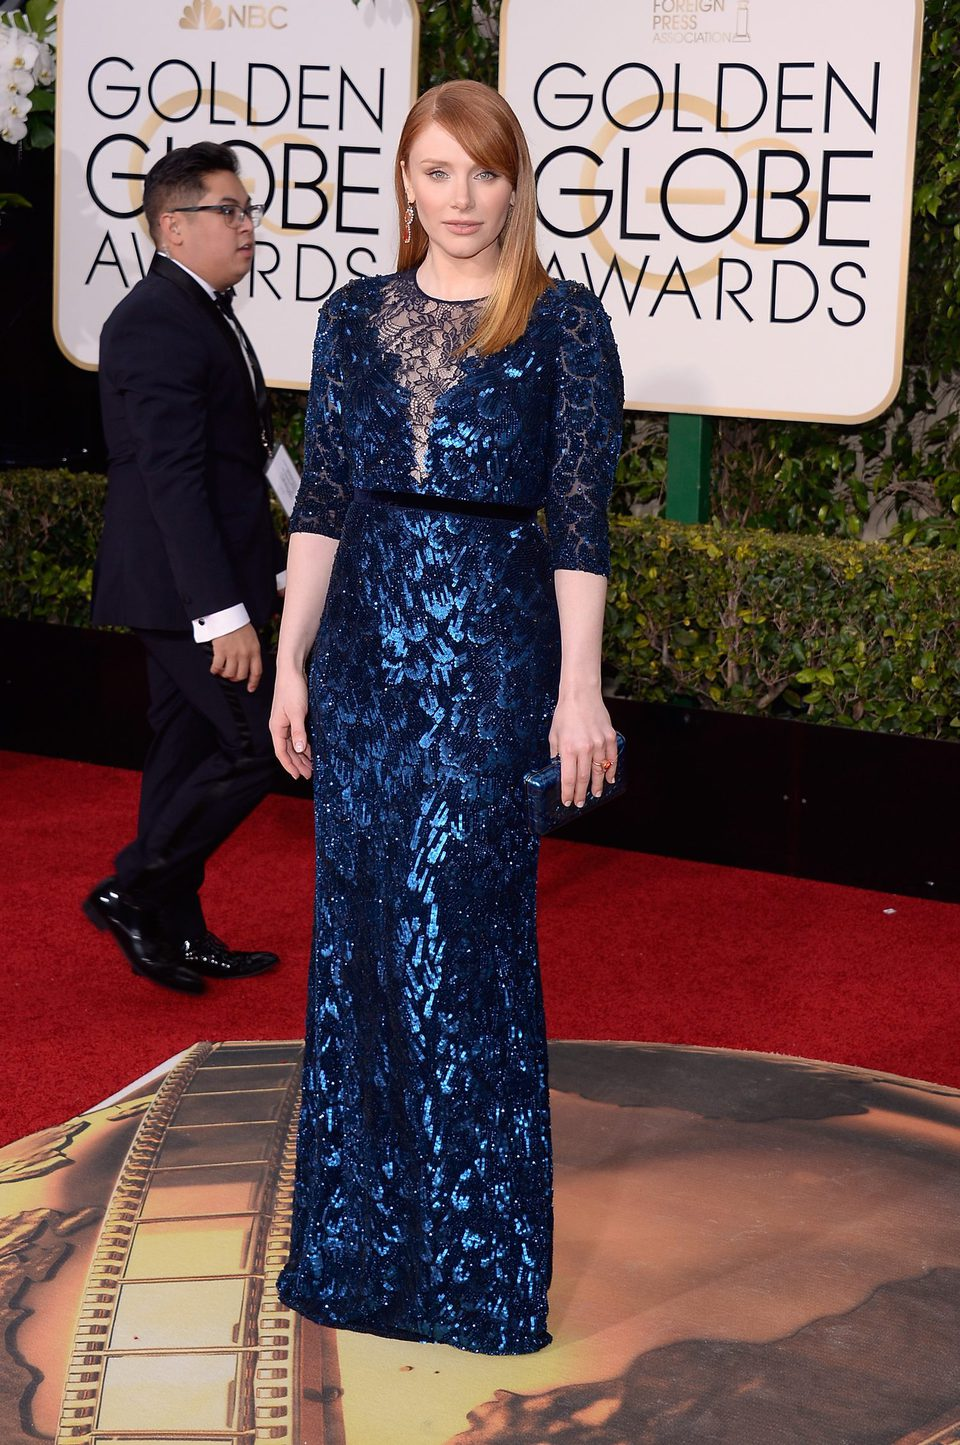 Bryce Dallas Howard in the 2016 Golden Globes red carpet